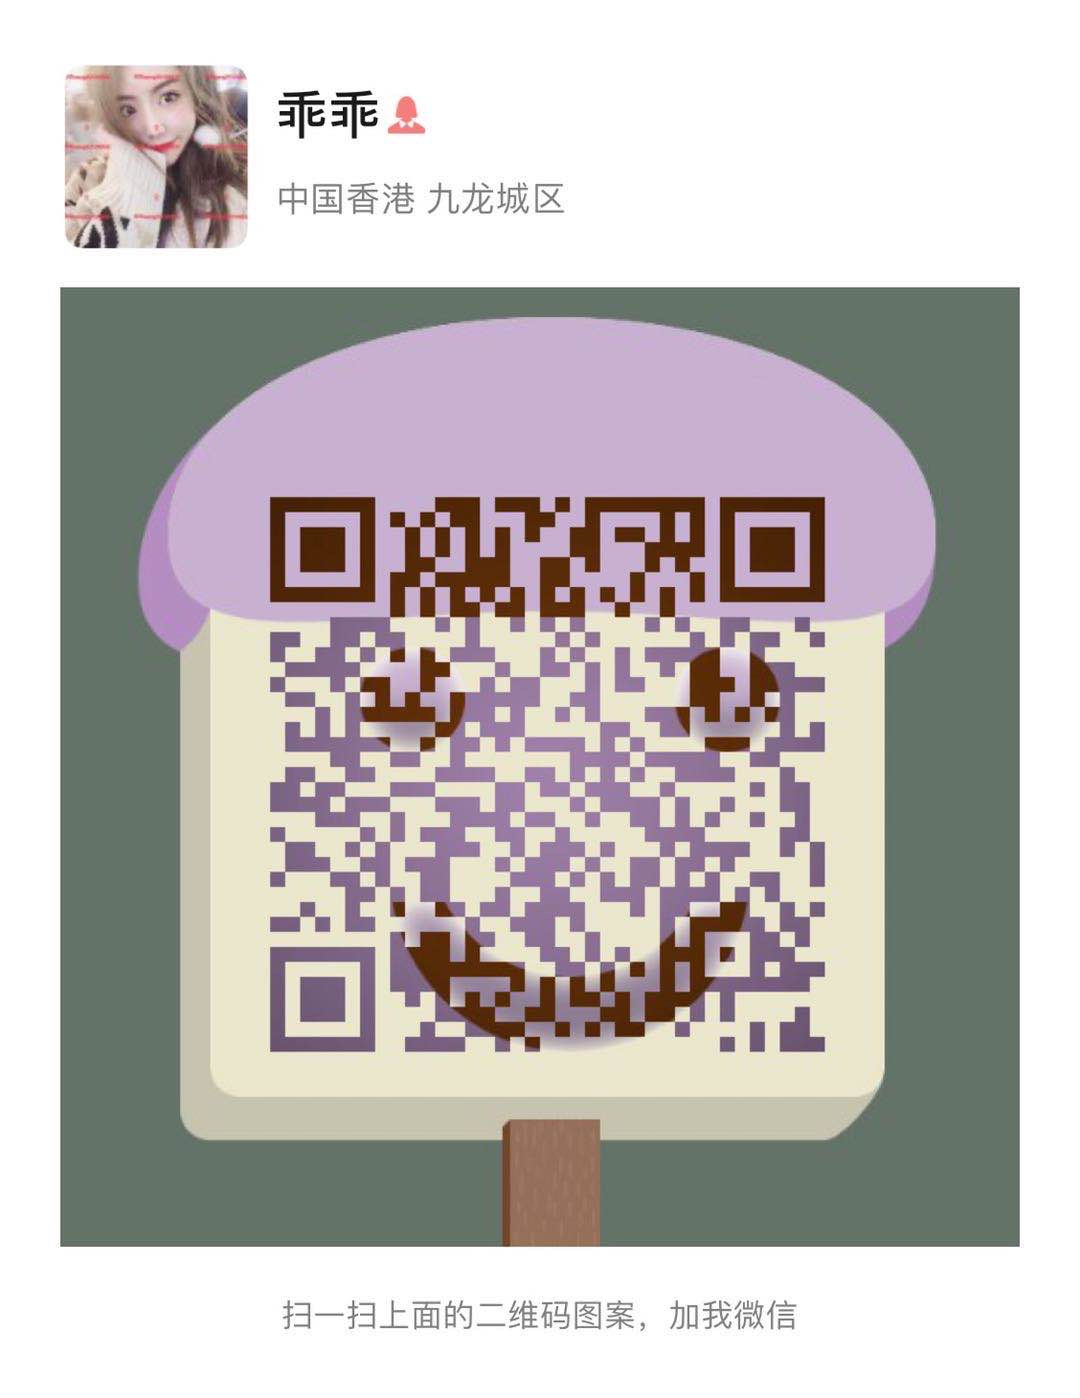 .\..\..\..\..\..\..\AppData\Local\Temp\WeChat Files\7c7fe421bc4711c6752cee1fa4396b3f_.jpg